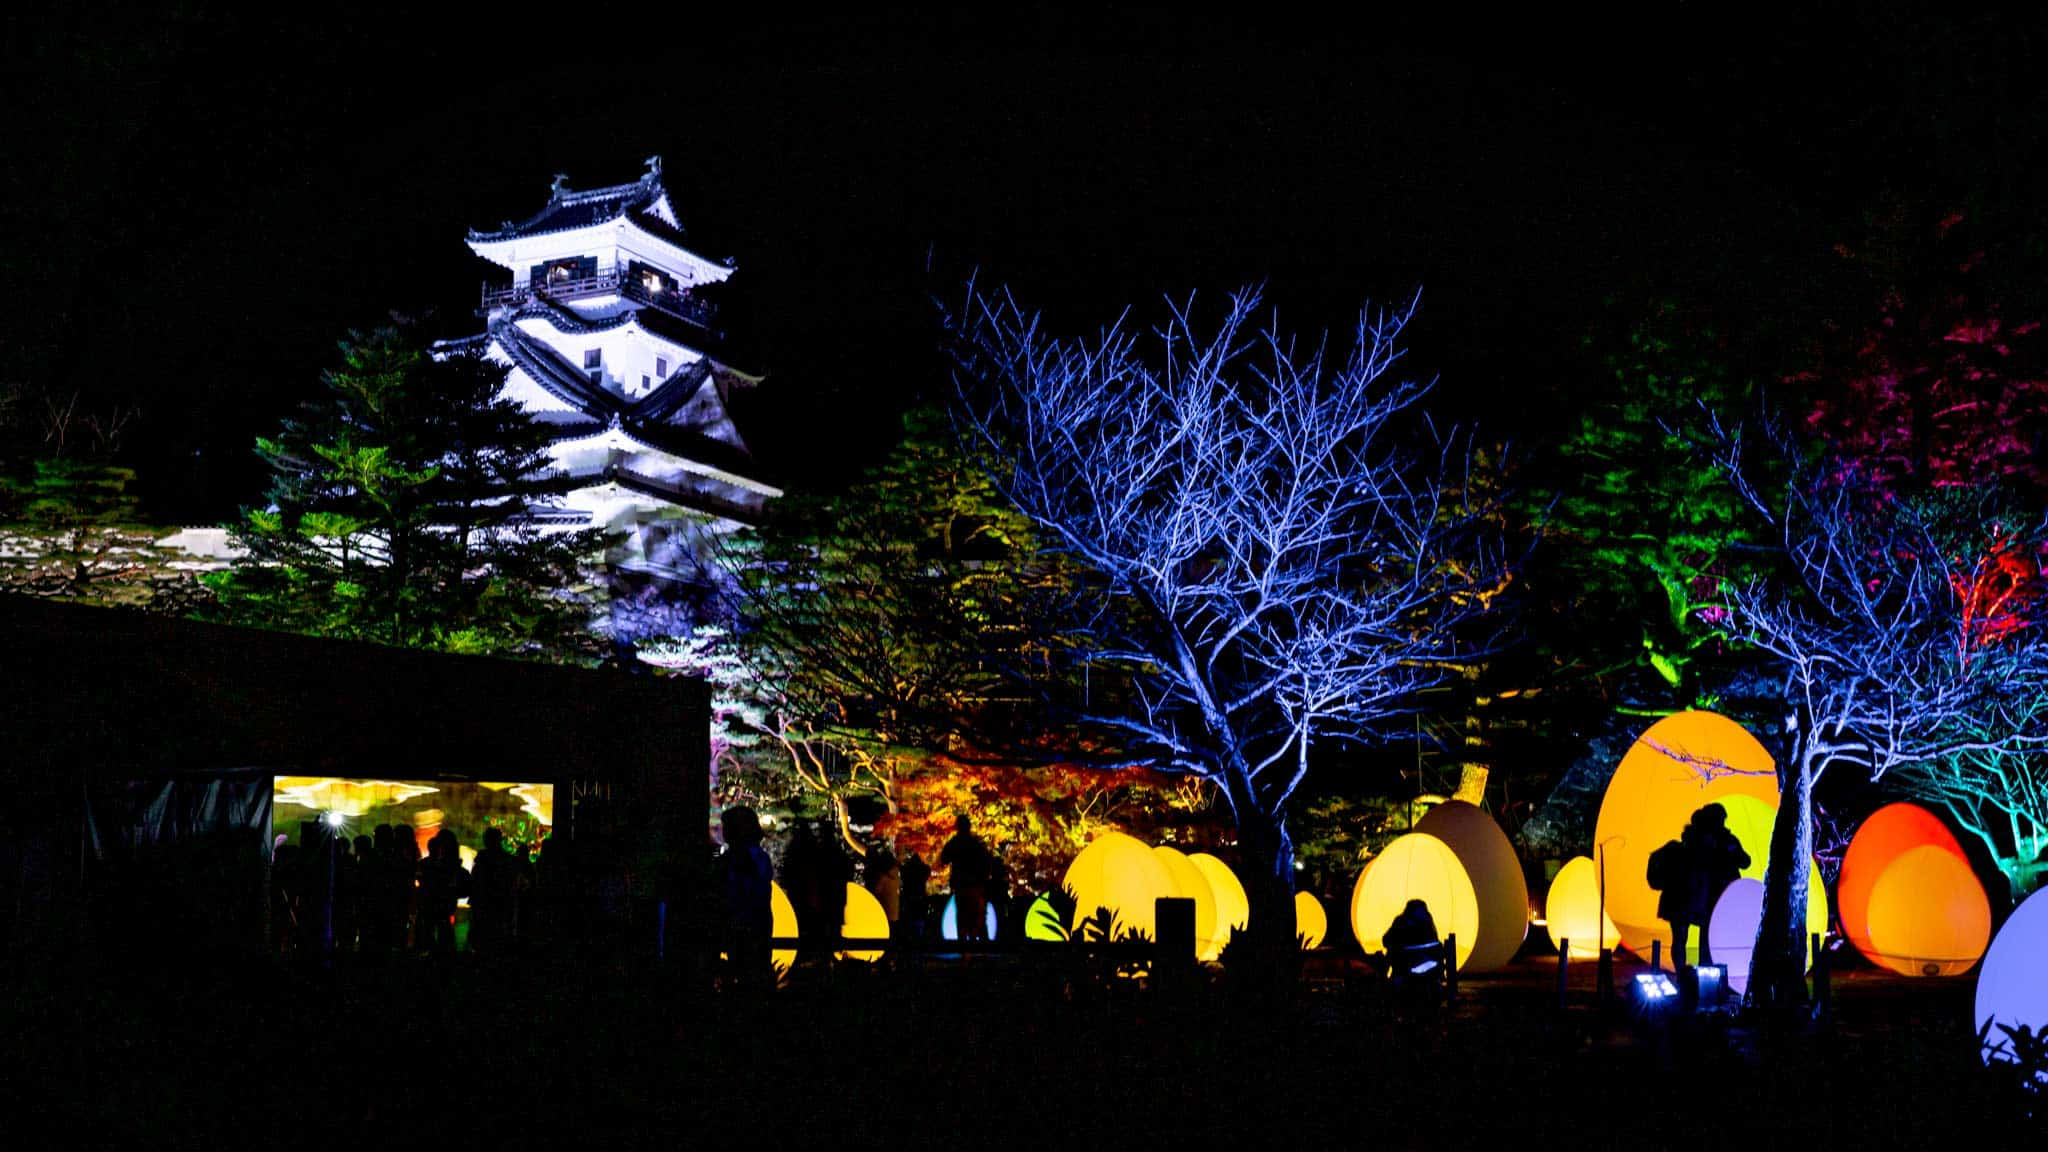 Kōchi Castle shines high above the coloured teamLab work